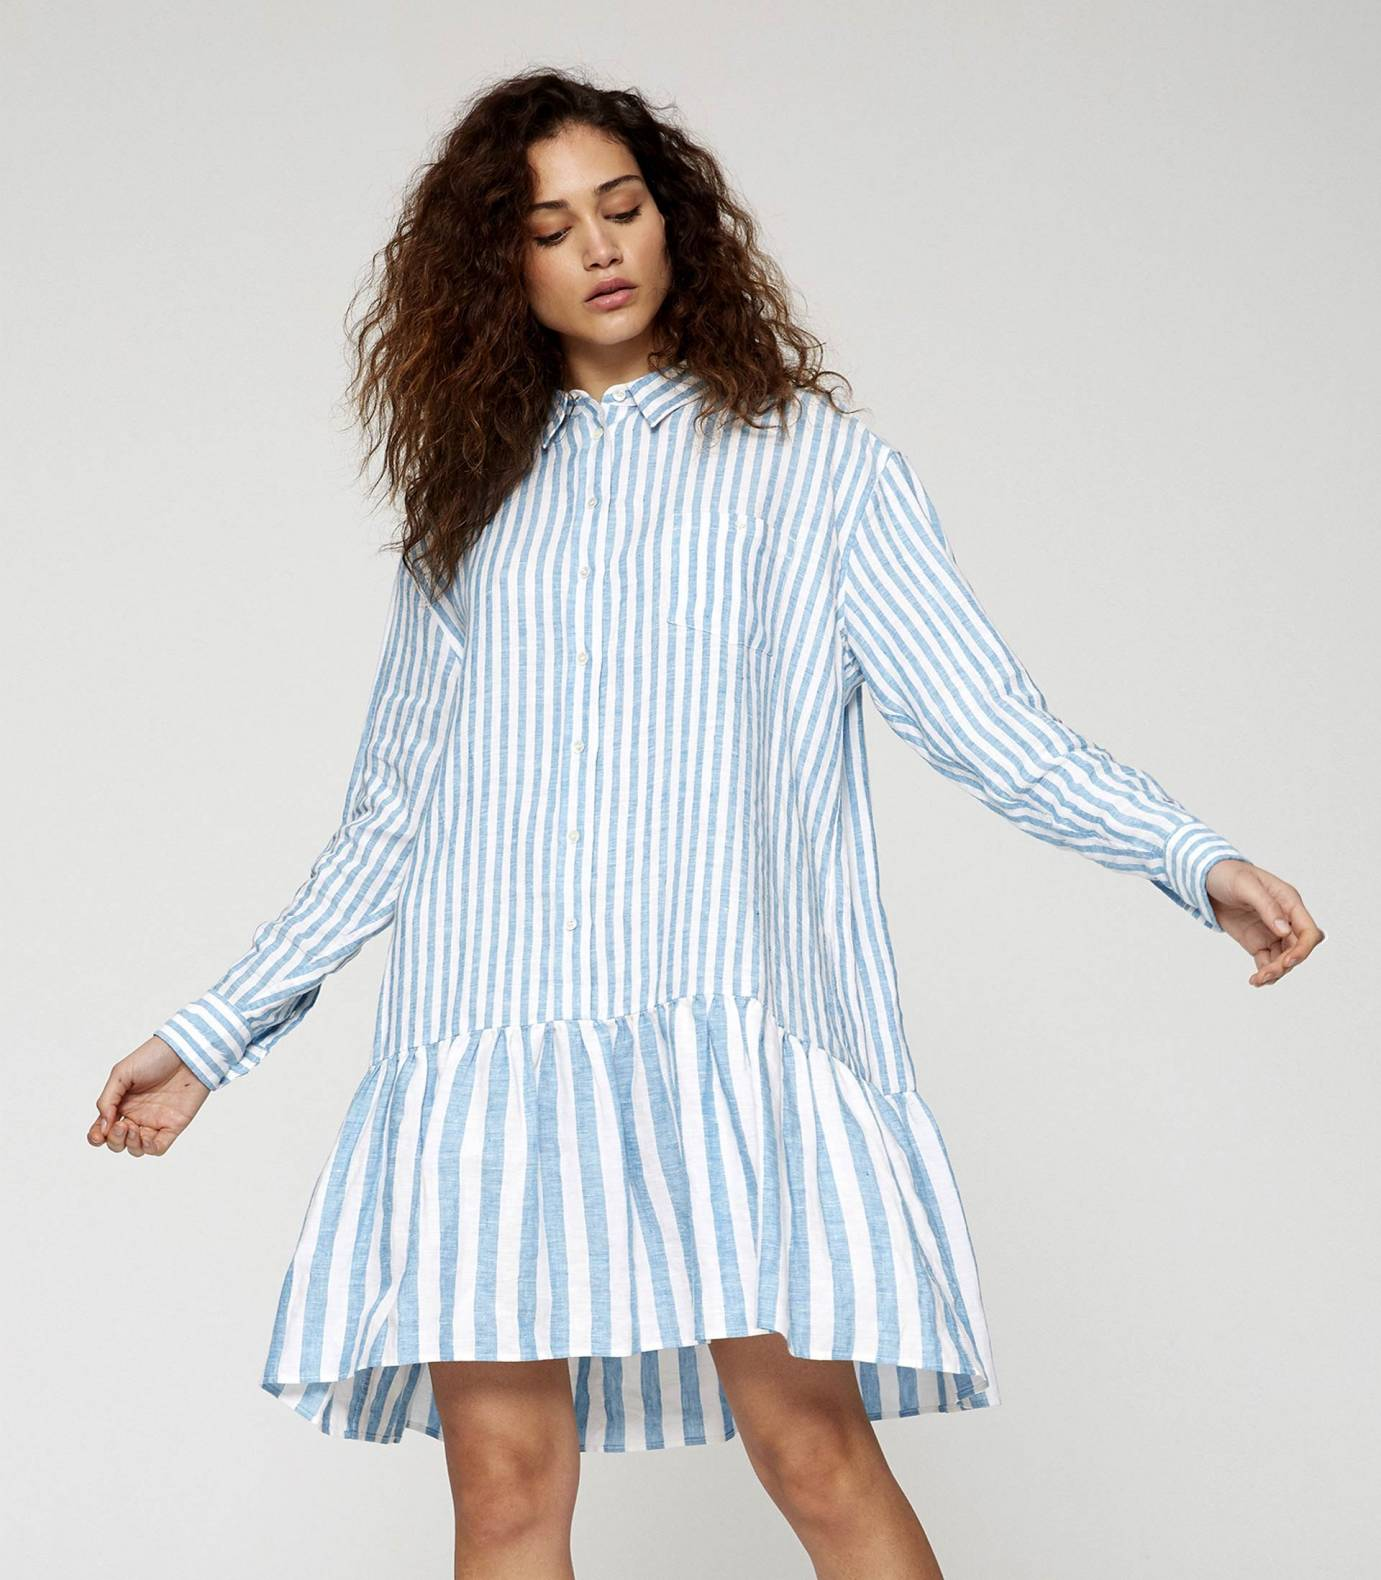 Capri Striped Dress